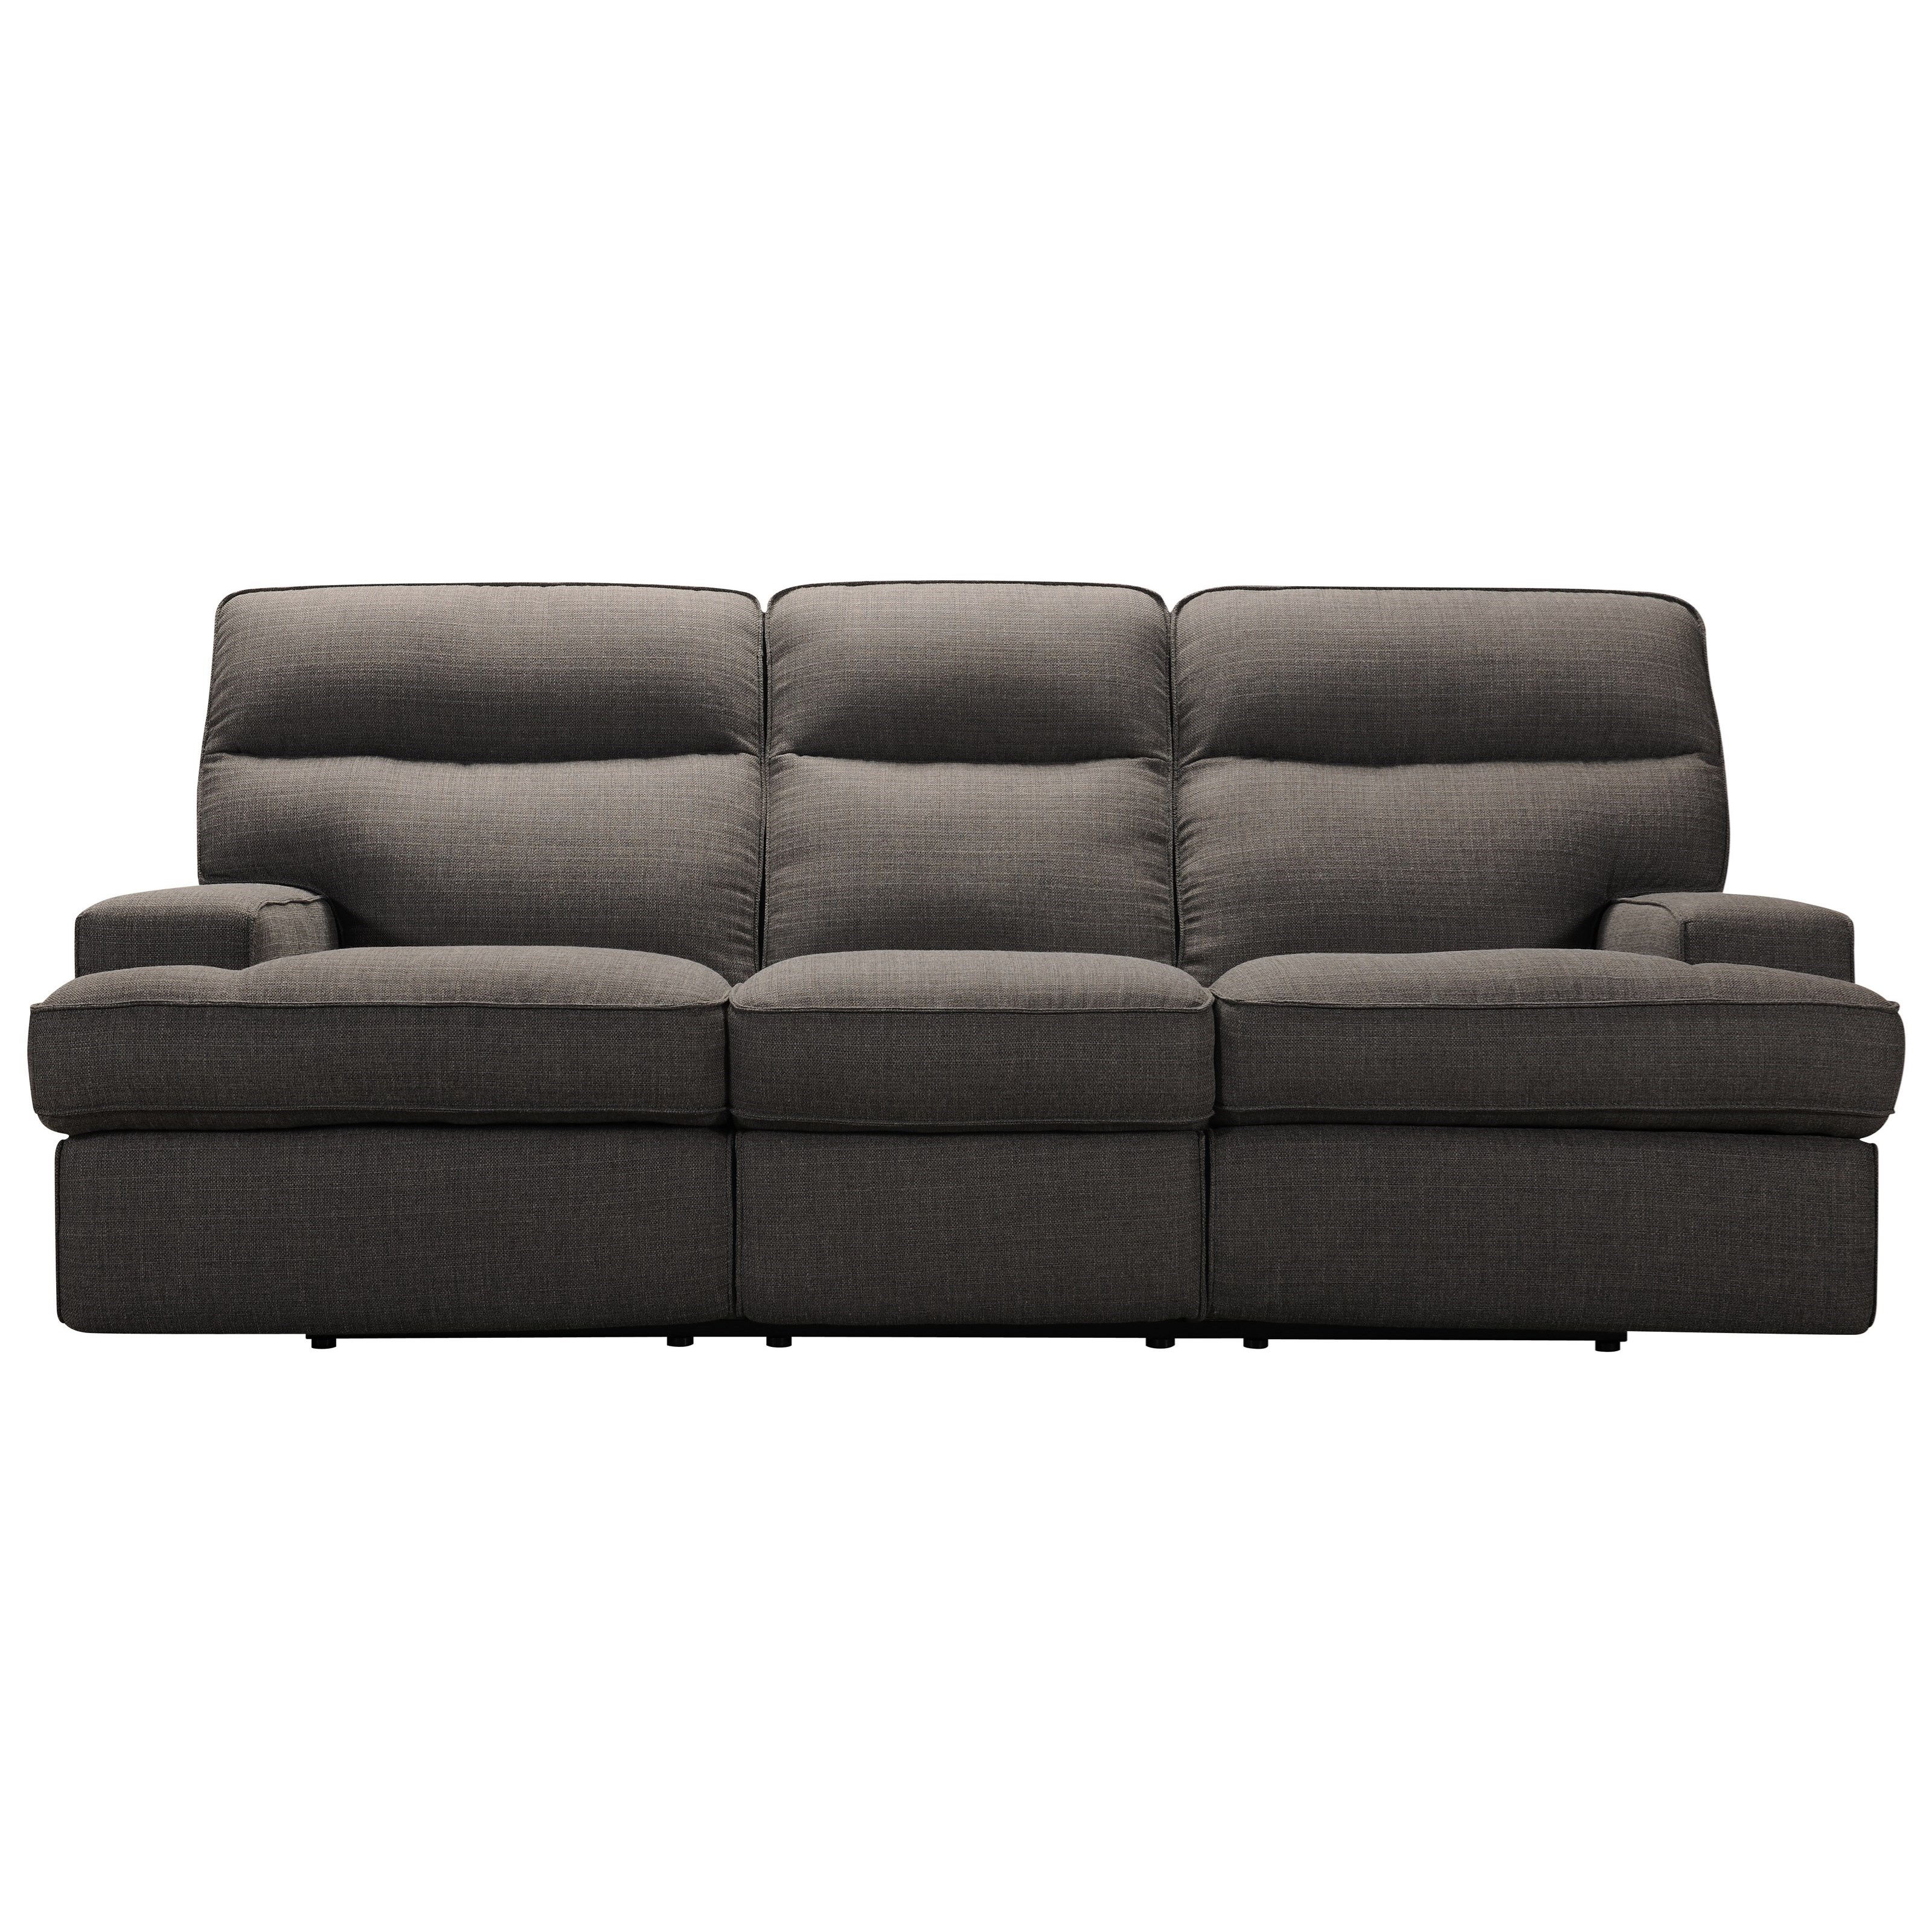 Sarah Randolph Designs 32146 Power Reclining Sofa with Power Headrests - Item Number: 32146EM-FK-3PEMH-TX2233